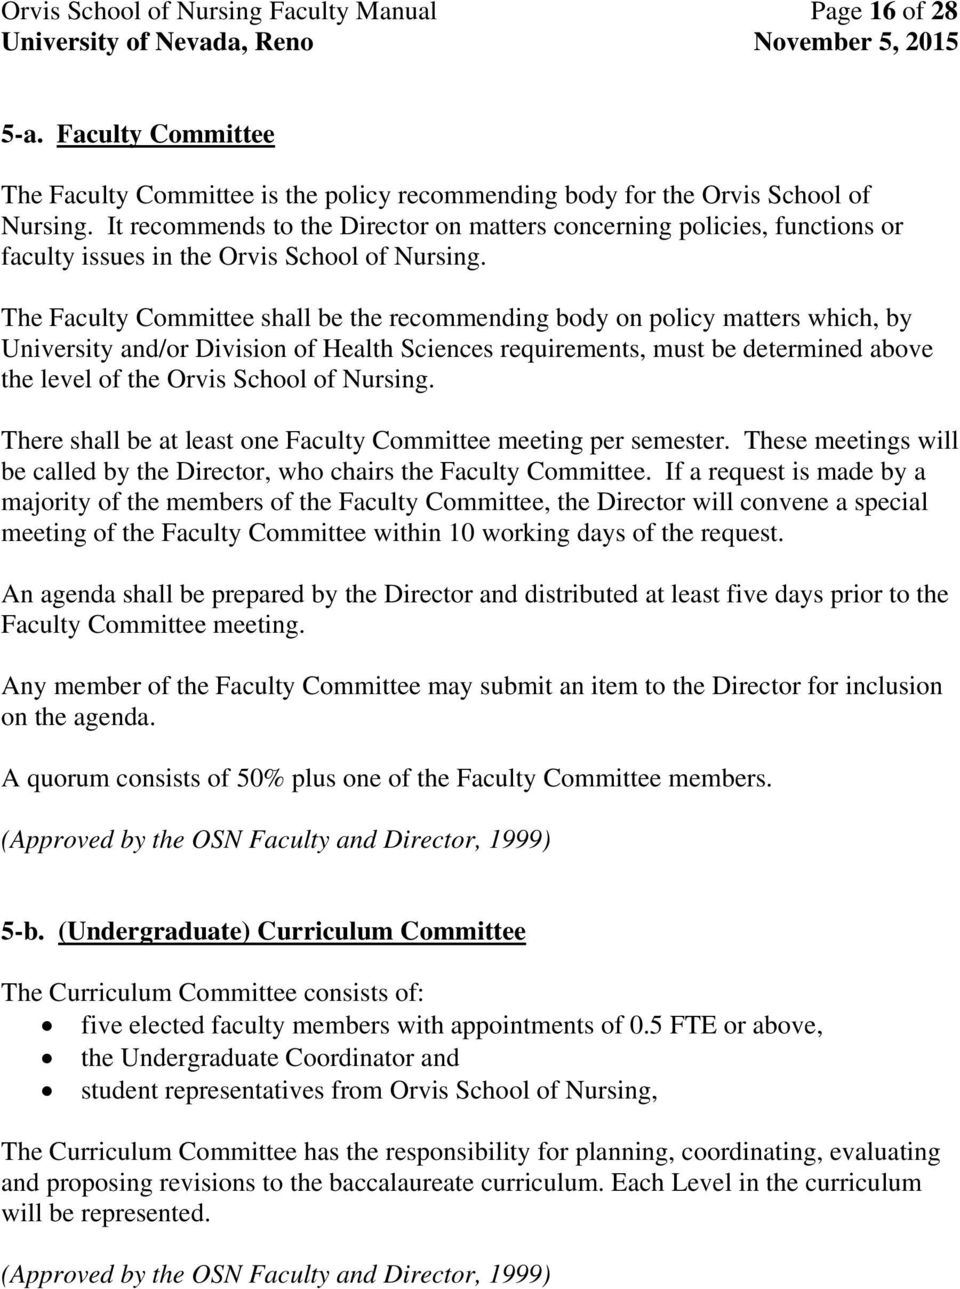 The Faculty Committee shall be the recommending body on policy matters which, by University and/or Division of Health Sciences requirements, must be determined above the level of the Orvis School of